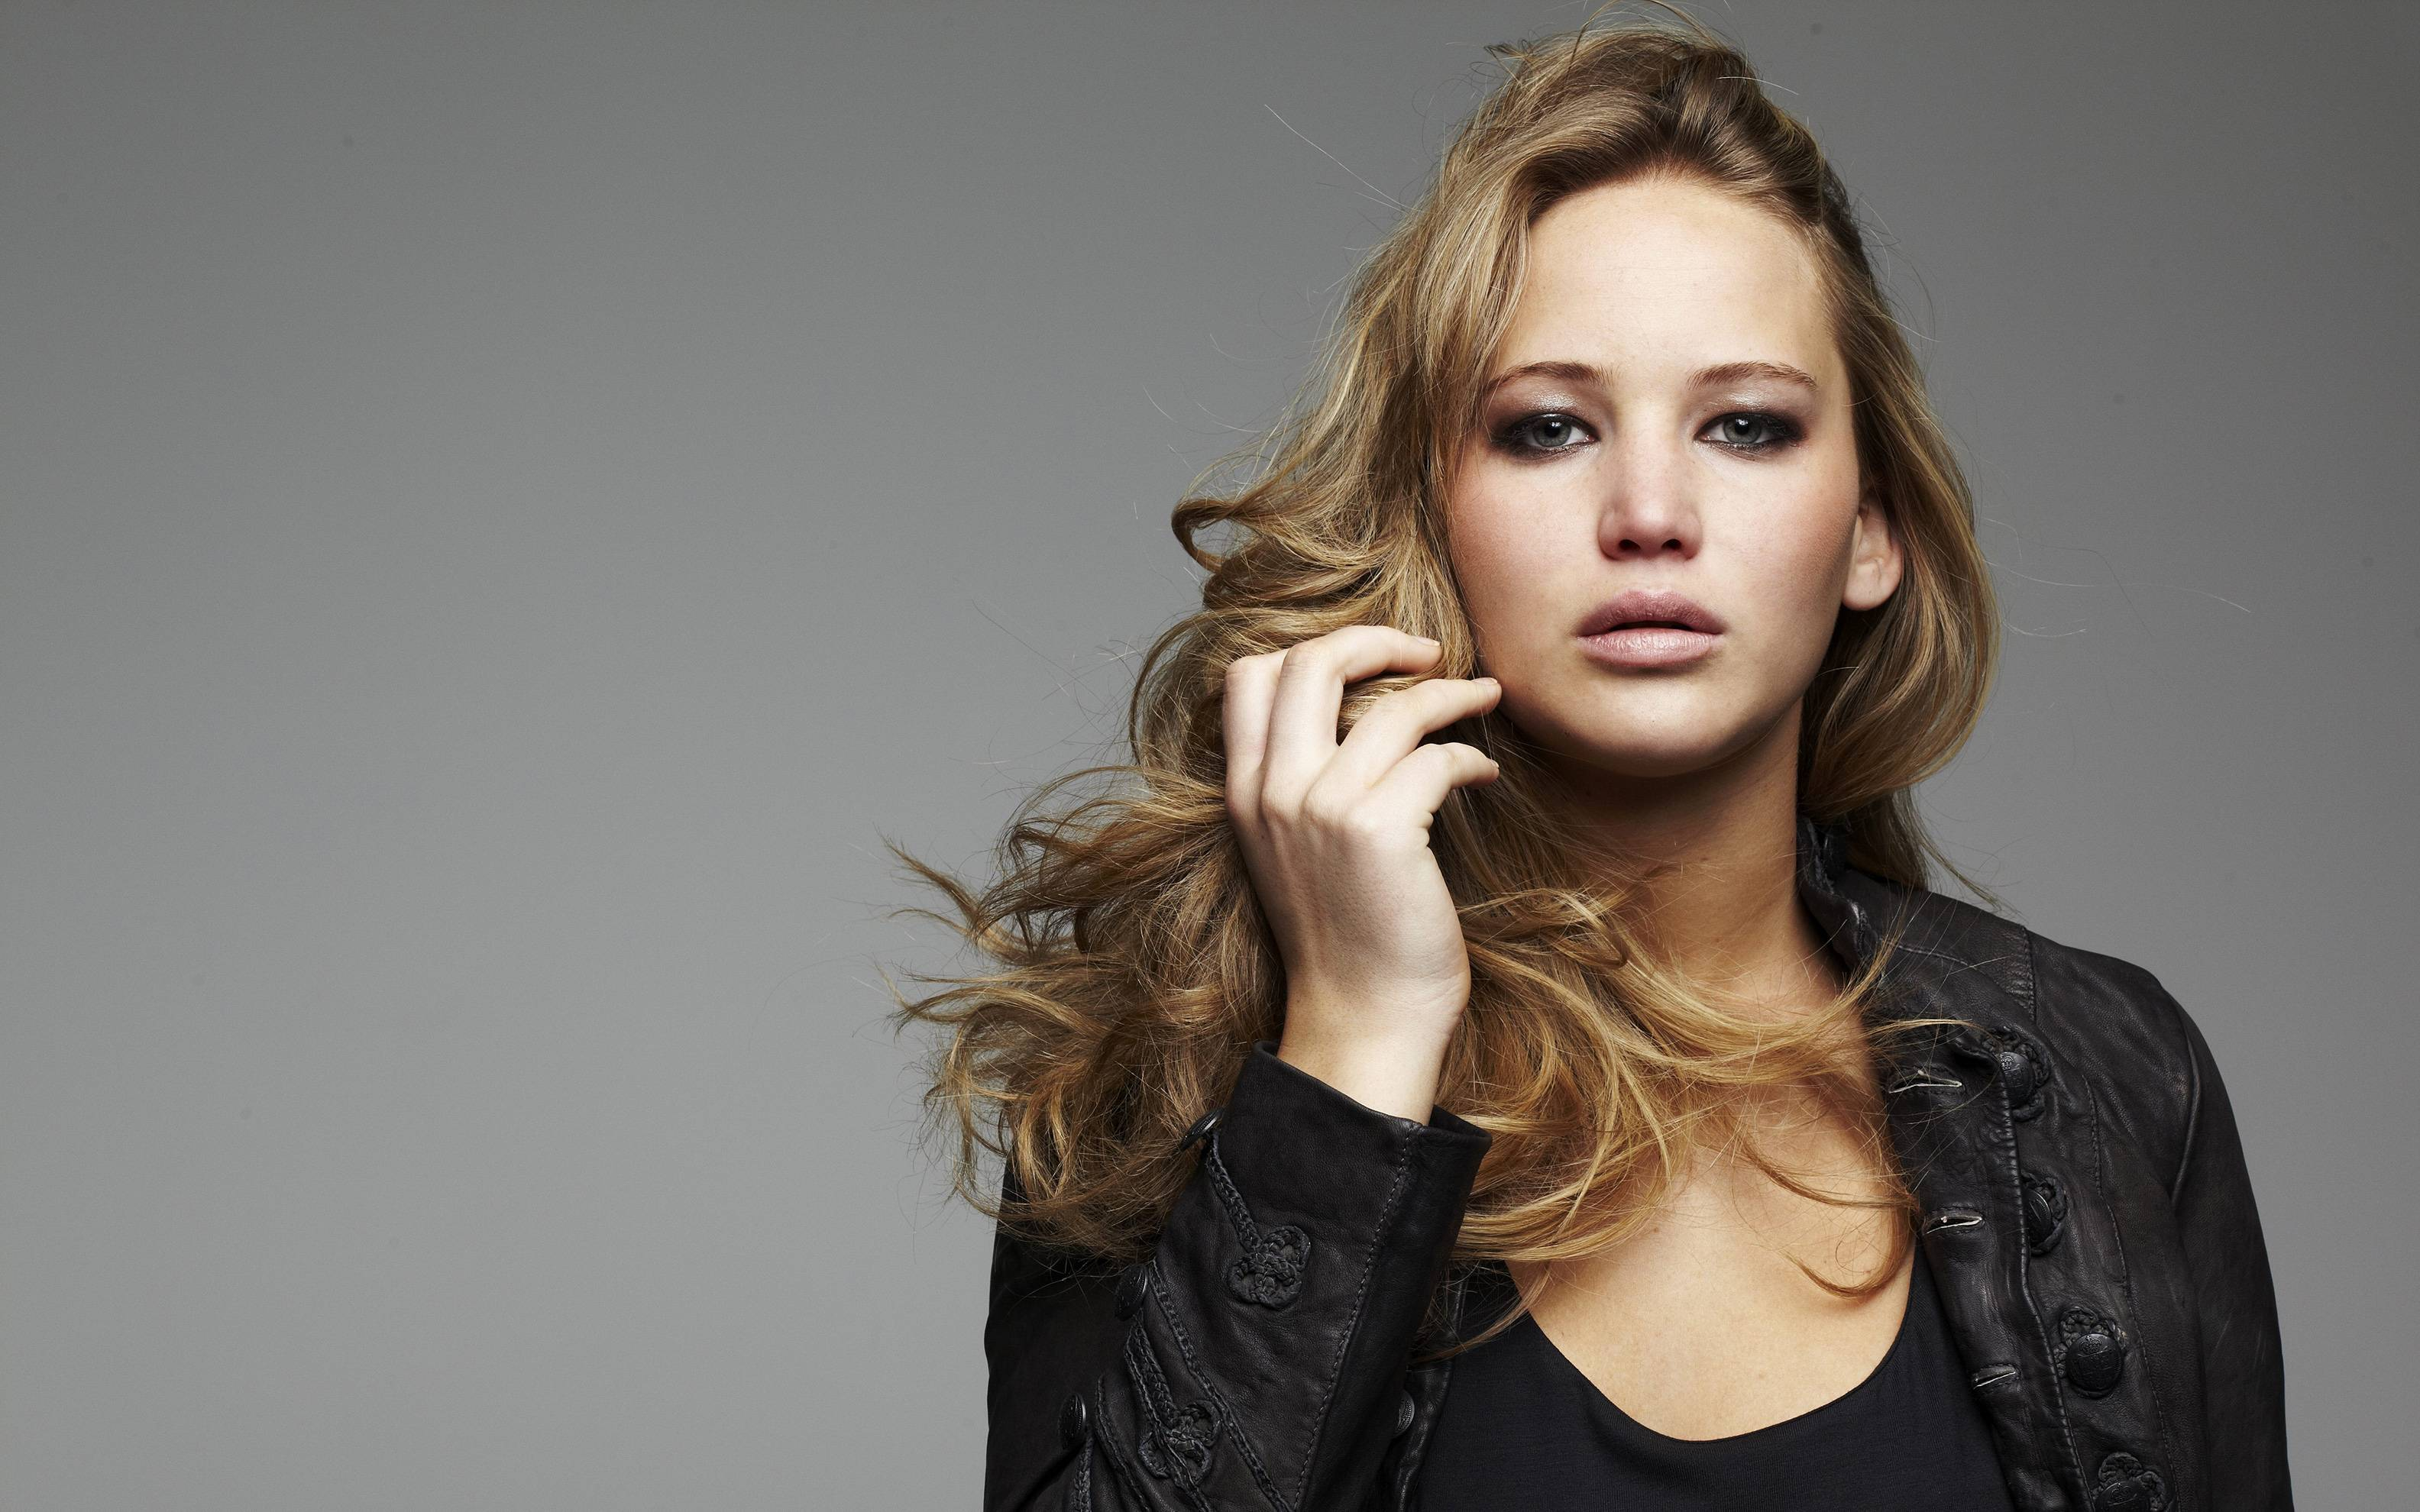 Jennifer Lawrence 2014 Free 15 HD Wallpapers | www.